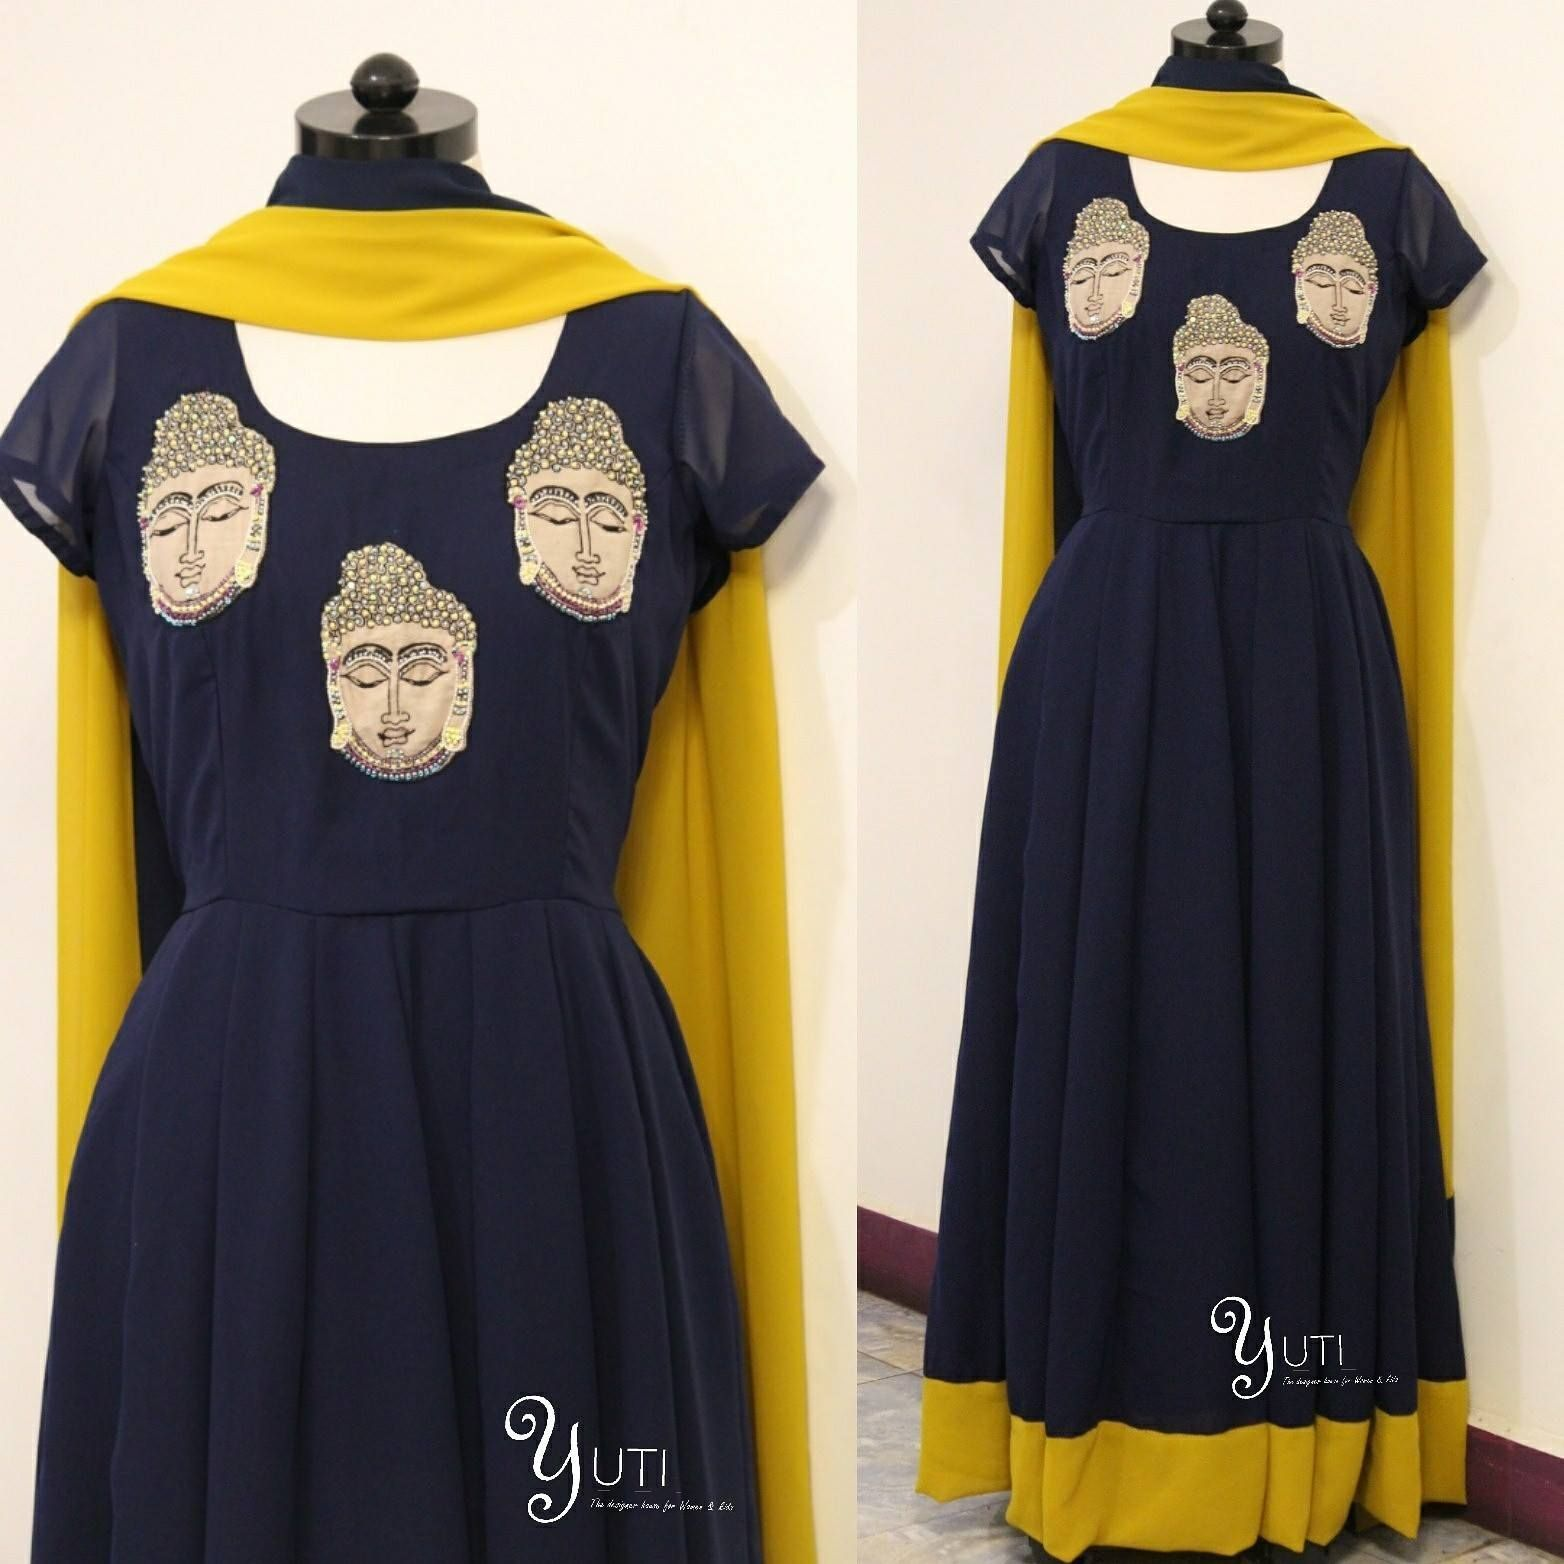 YUTI very own statement cow anarkali now with a buddha face customized for a peace lover!